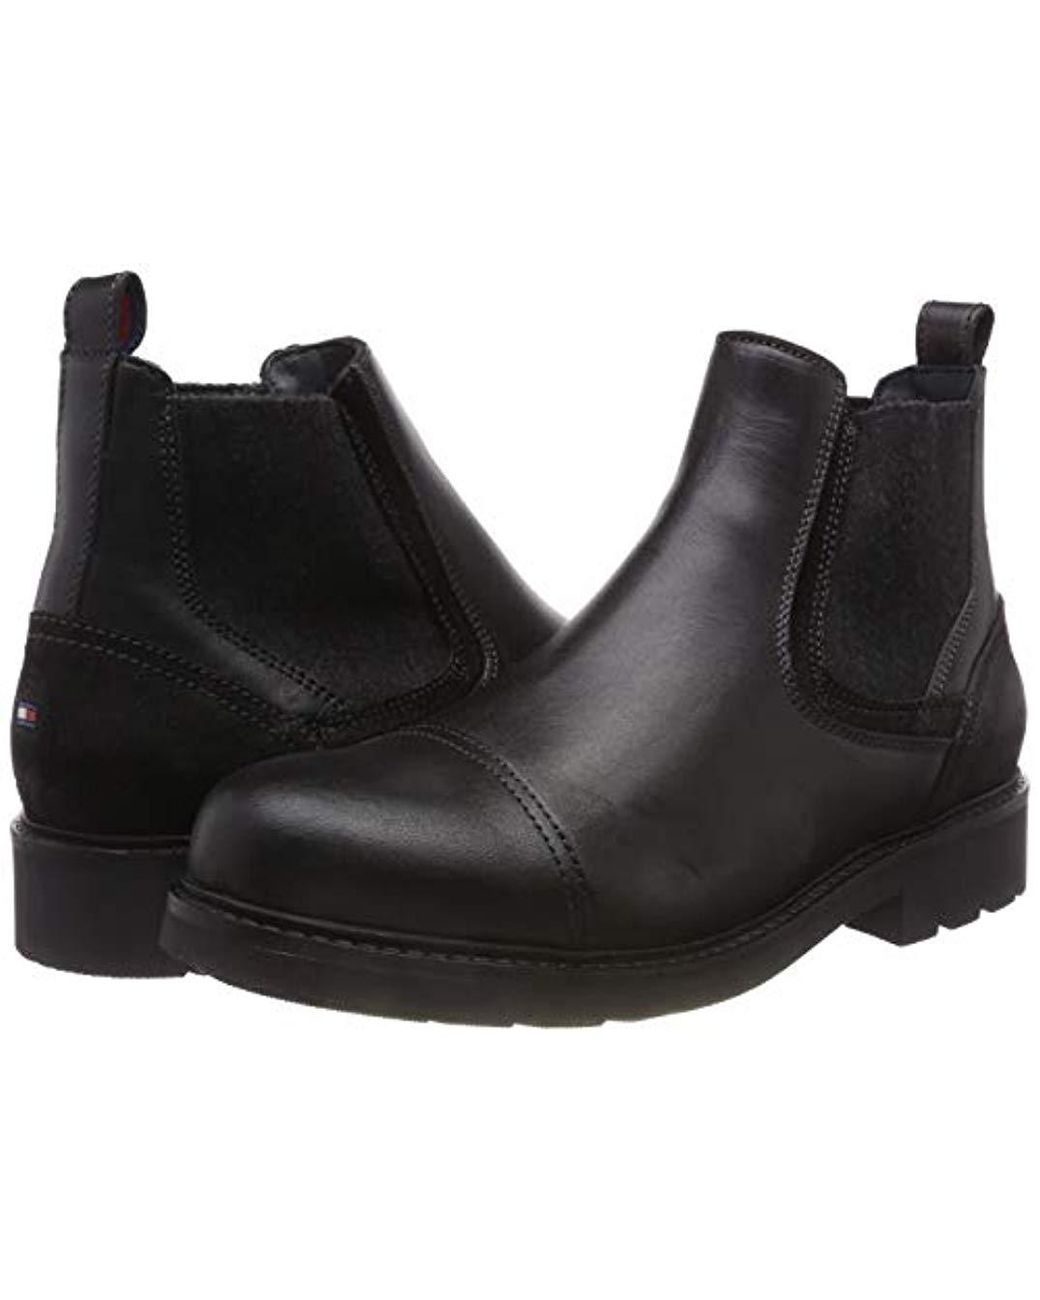 b9b146510352 Tommy Hilfiger. Men s Black  s Active Leather Chelsea Boot. £128 From  Amazon. Free shipping ...